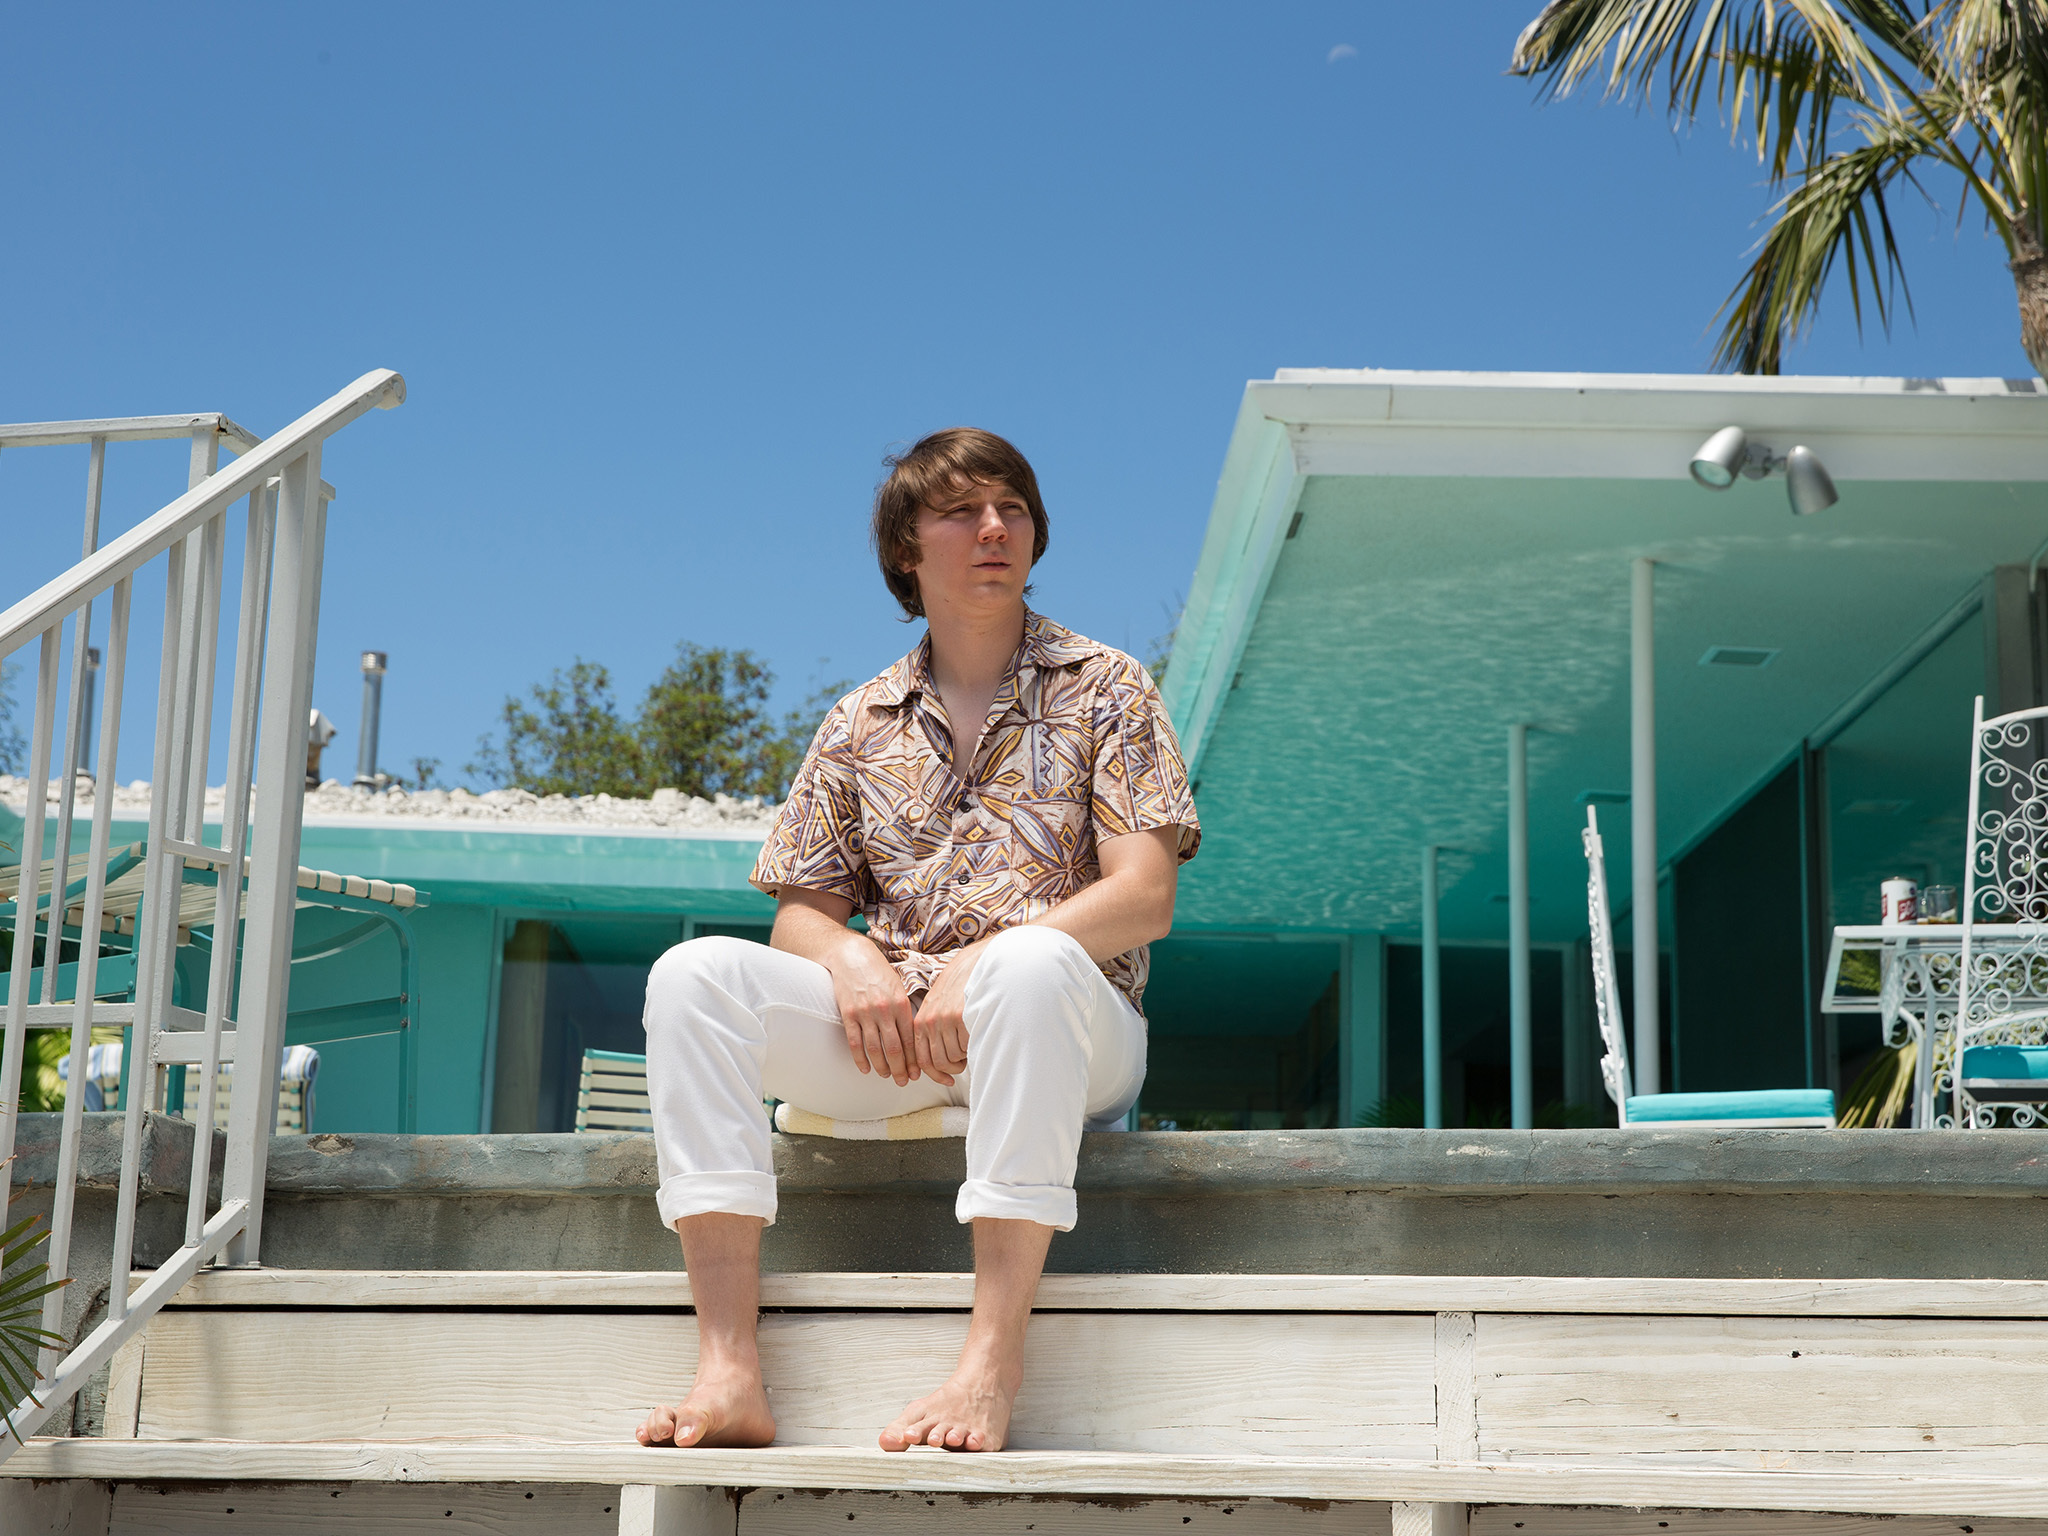 Paul Dano on the set of Roadside Attraction's LOVE AND MERCY. © Francois Duhamel